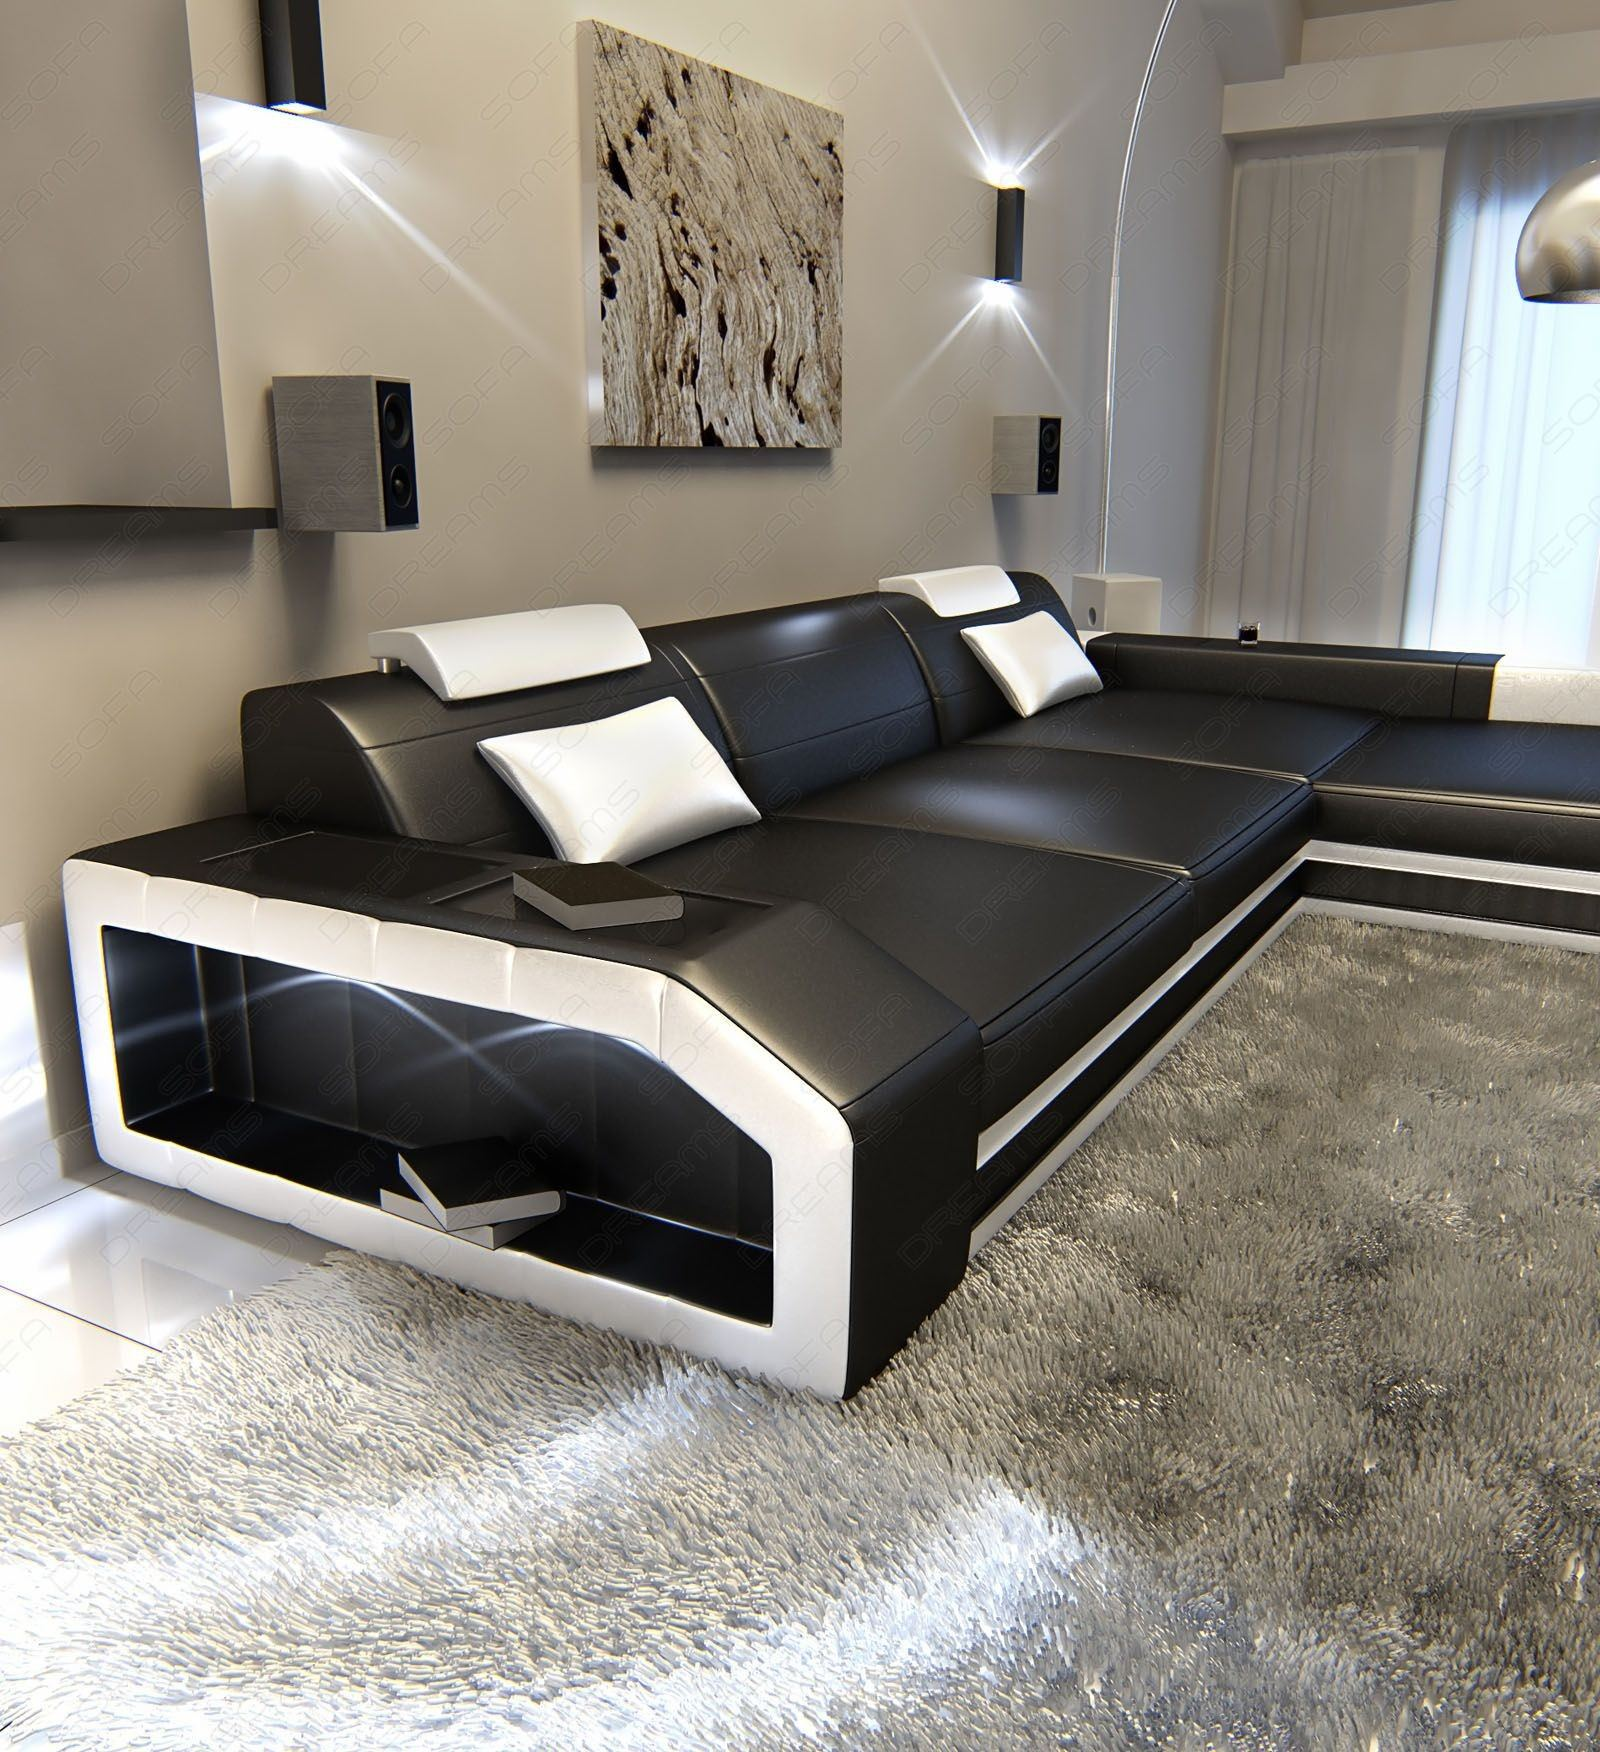 designersofa prato als l form in leder schwarz weiss bestellen. Black Bedroom Furniture Sets. Home Design Ideas